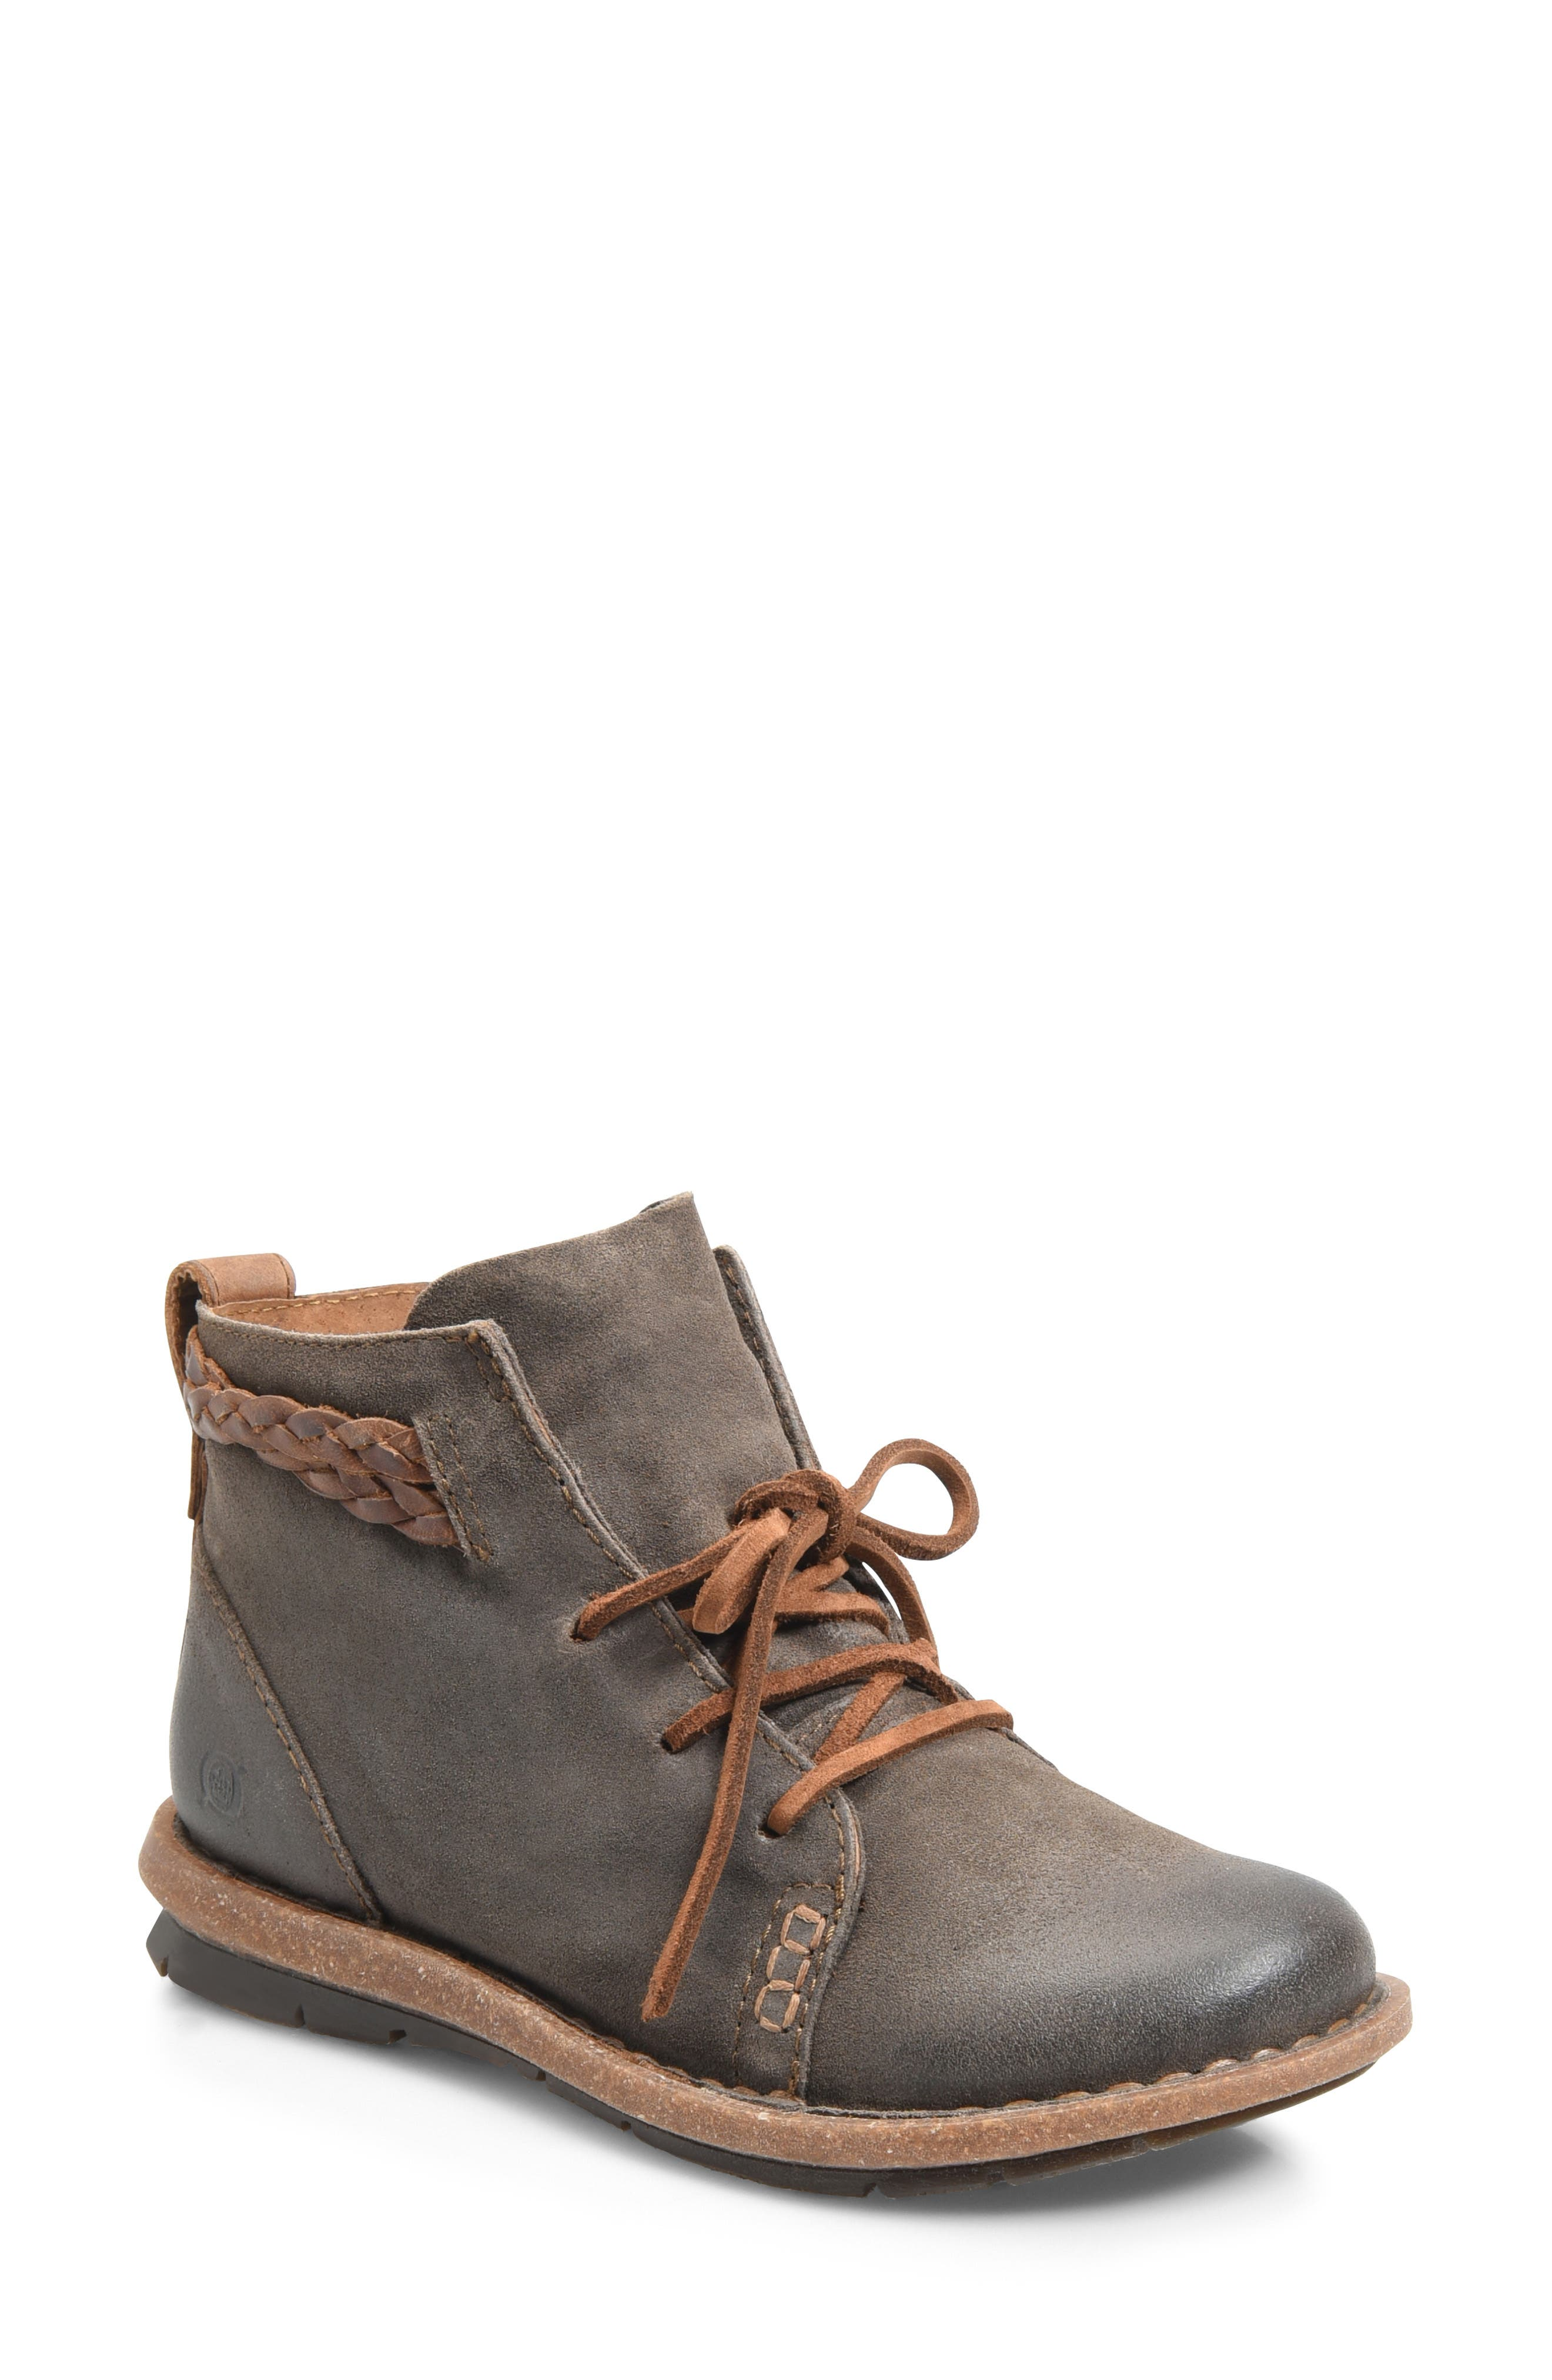 Temple Bootie,                         Main,                         color, TAUPE DISTRESSED LEATHER